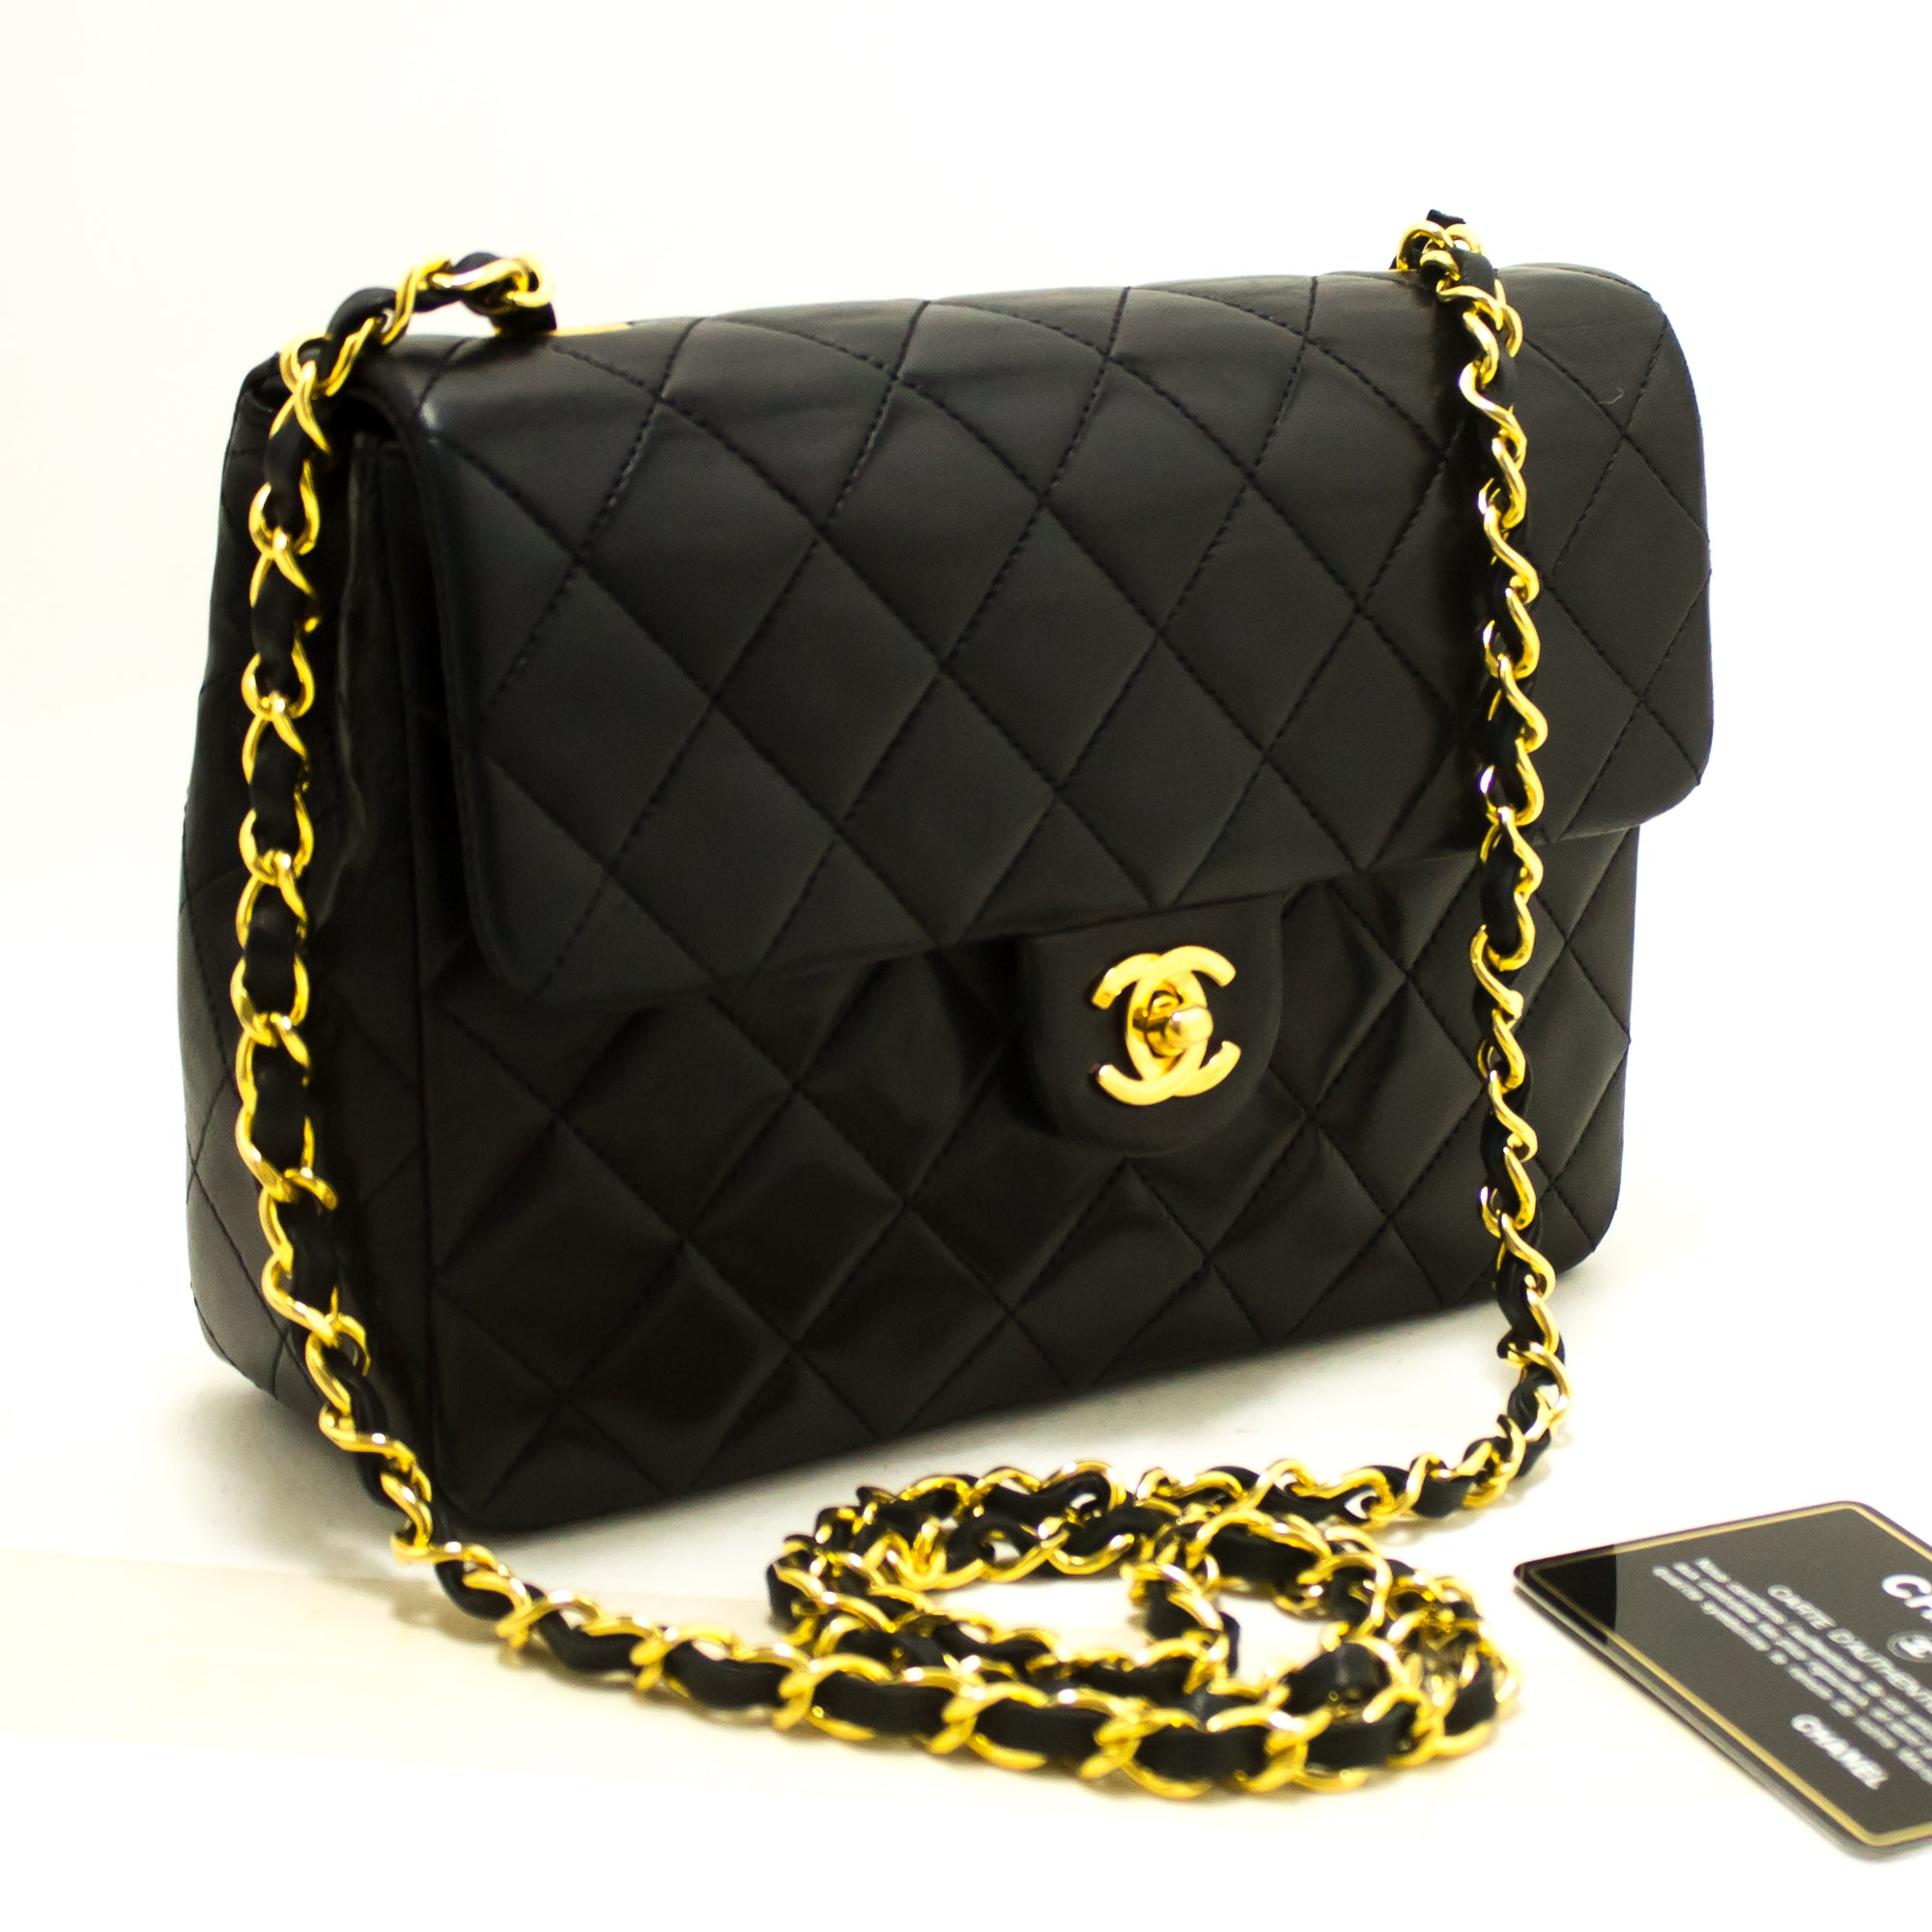 d118a122ecc070 ... CHANEL Mini Square Small Chain Shoulder Bag Crossbody Black Q80-Chanel-hannari-shop  ...